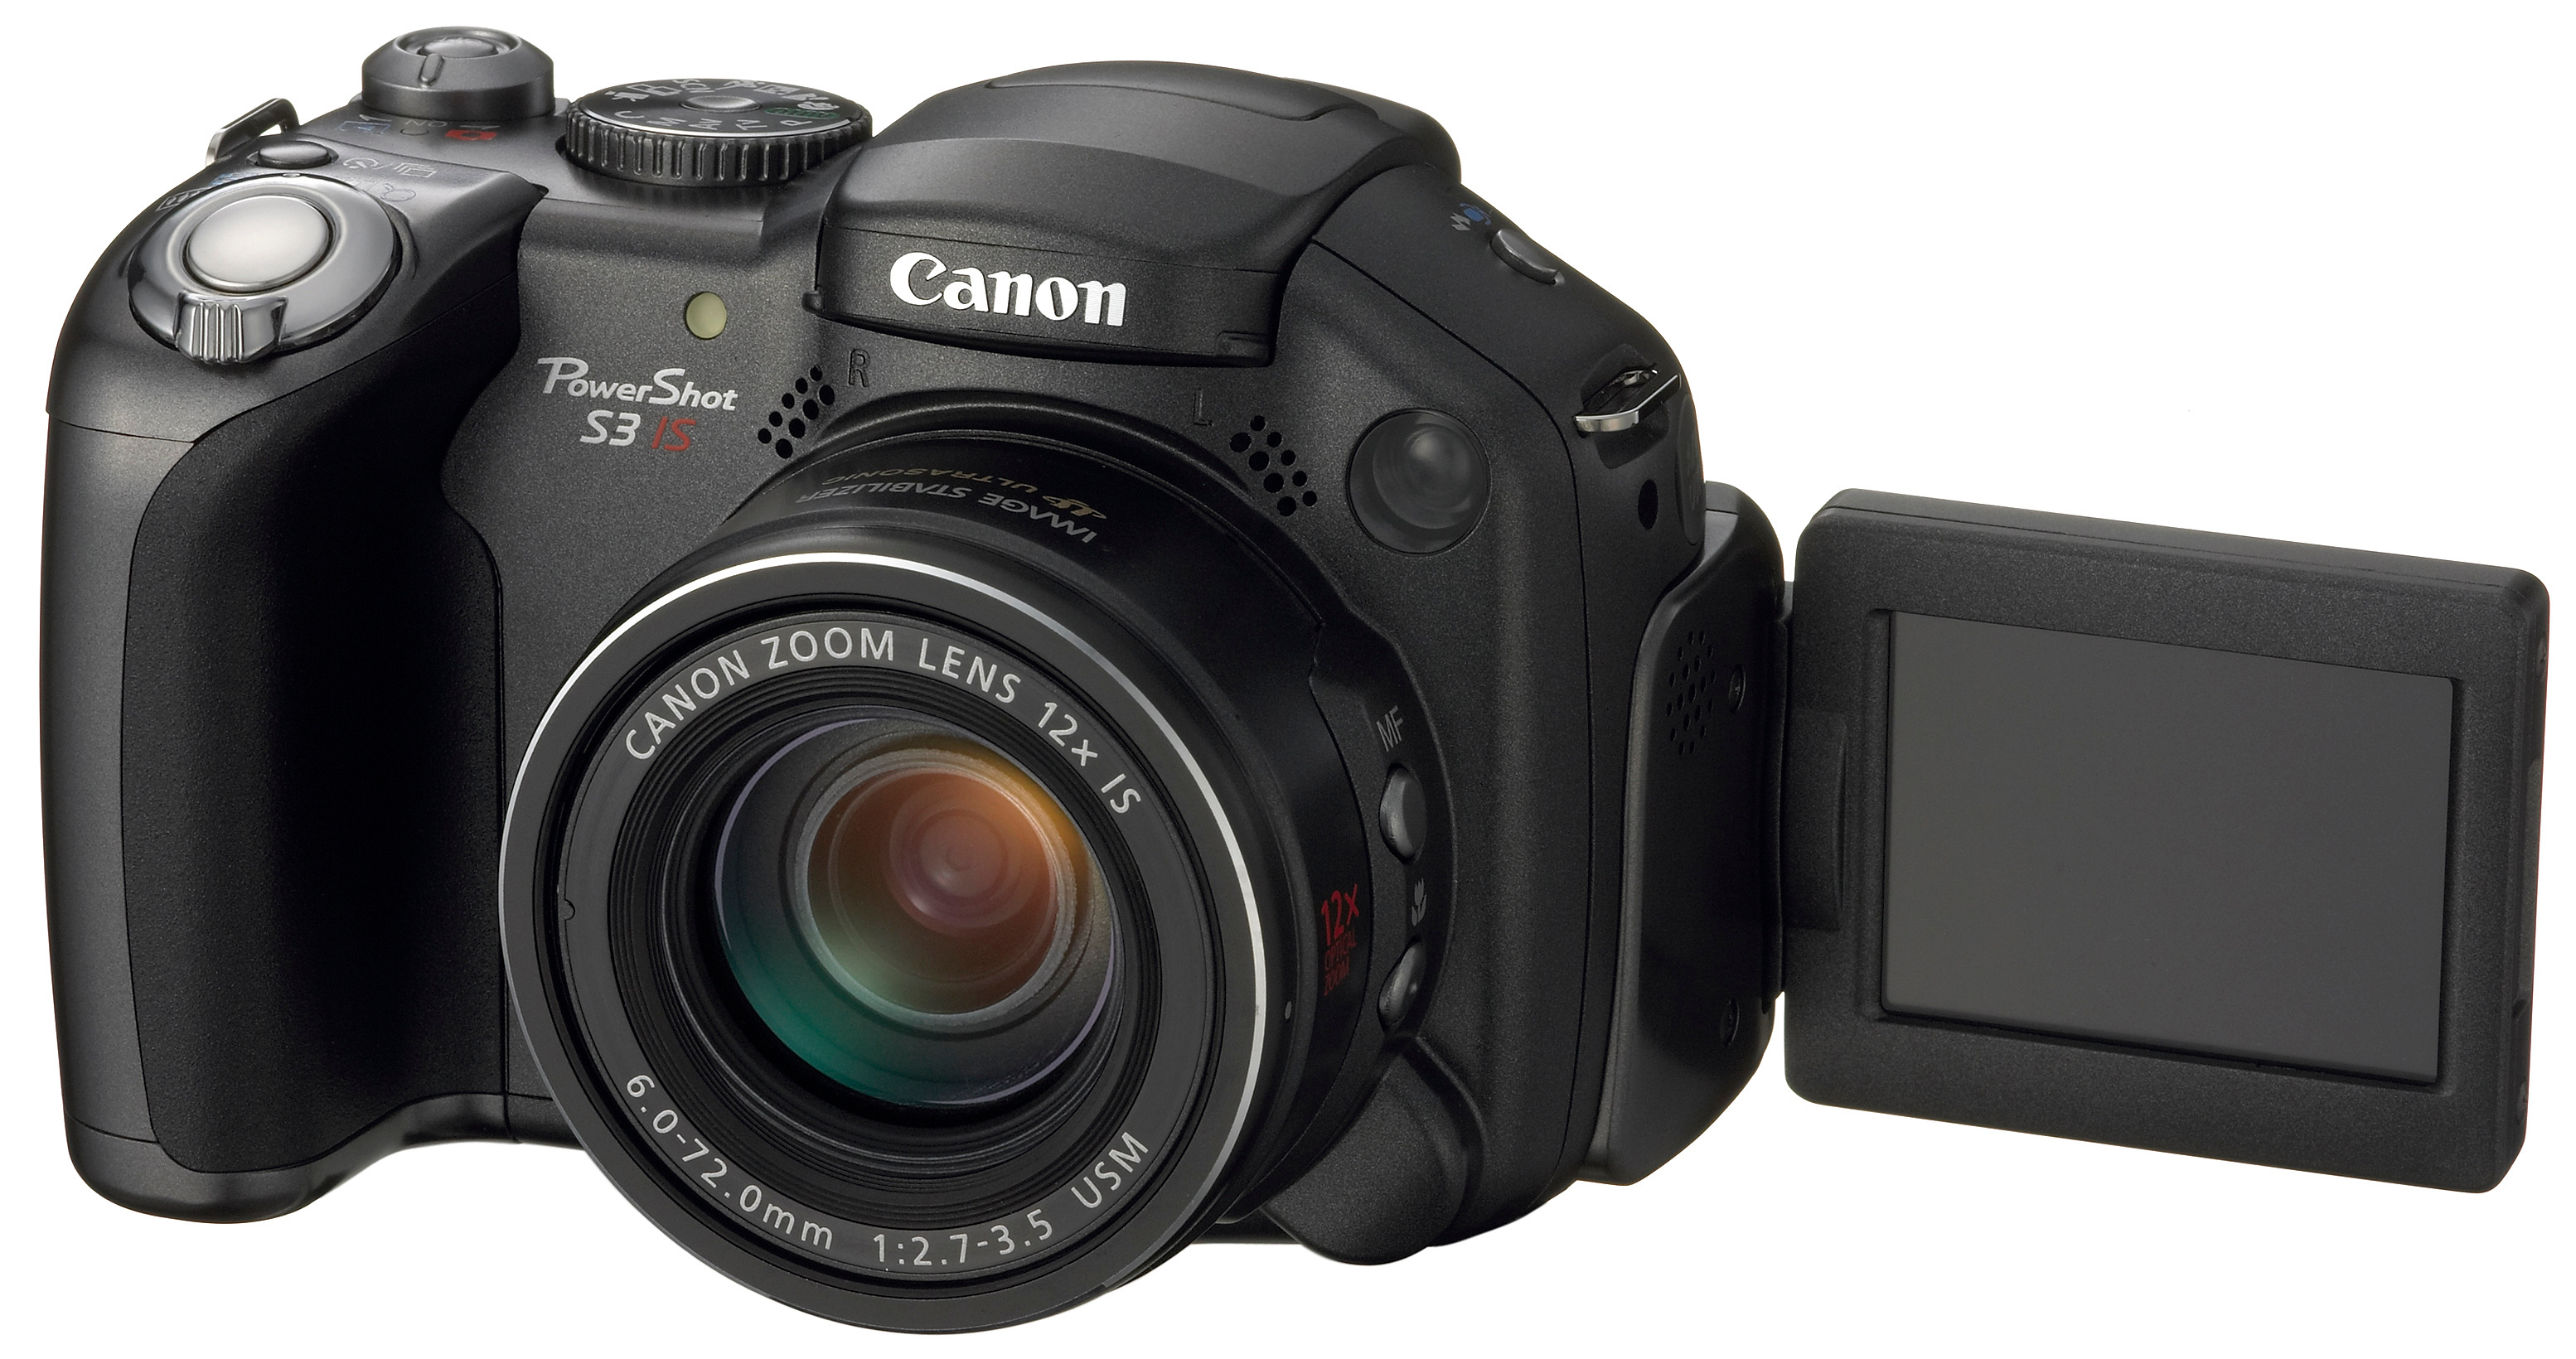 s3is chdk wiki fandom powered by wikia rh chdk wikia com canon powershot s3 is manual for sale canon powershot s3 is manual advanced guide